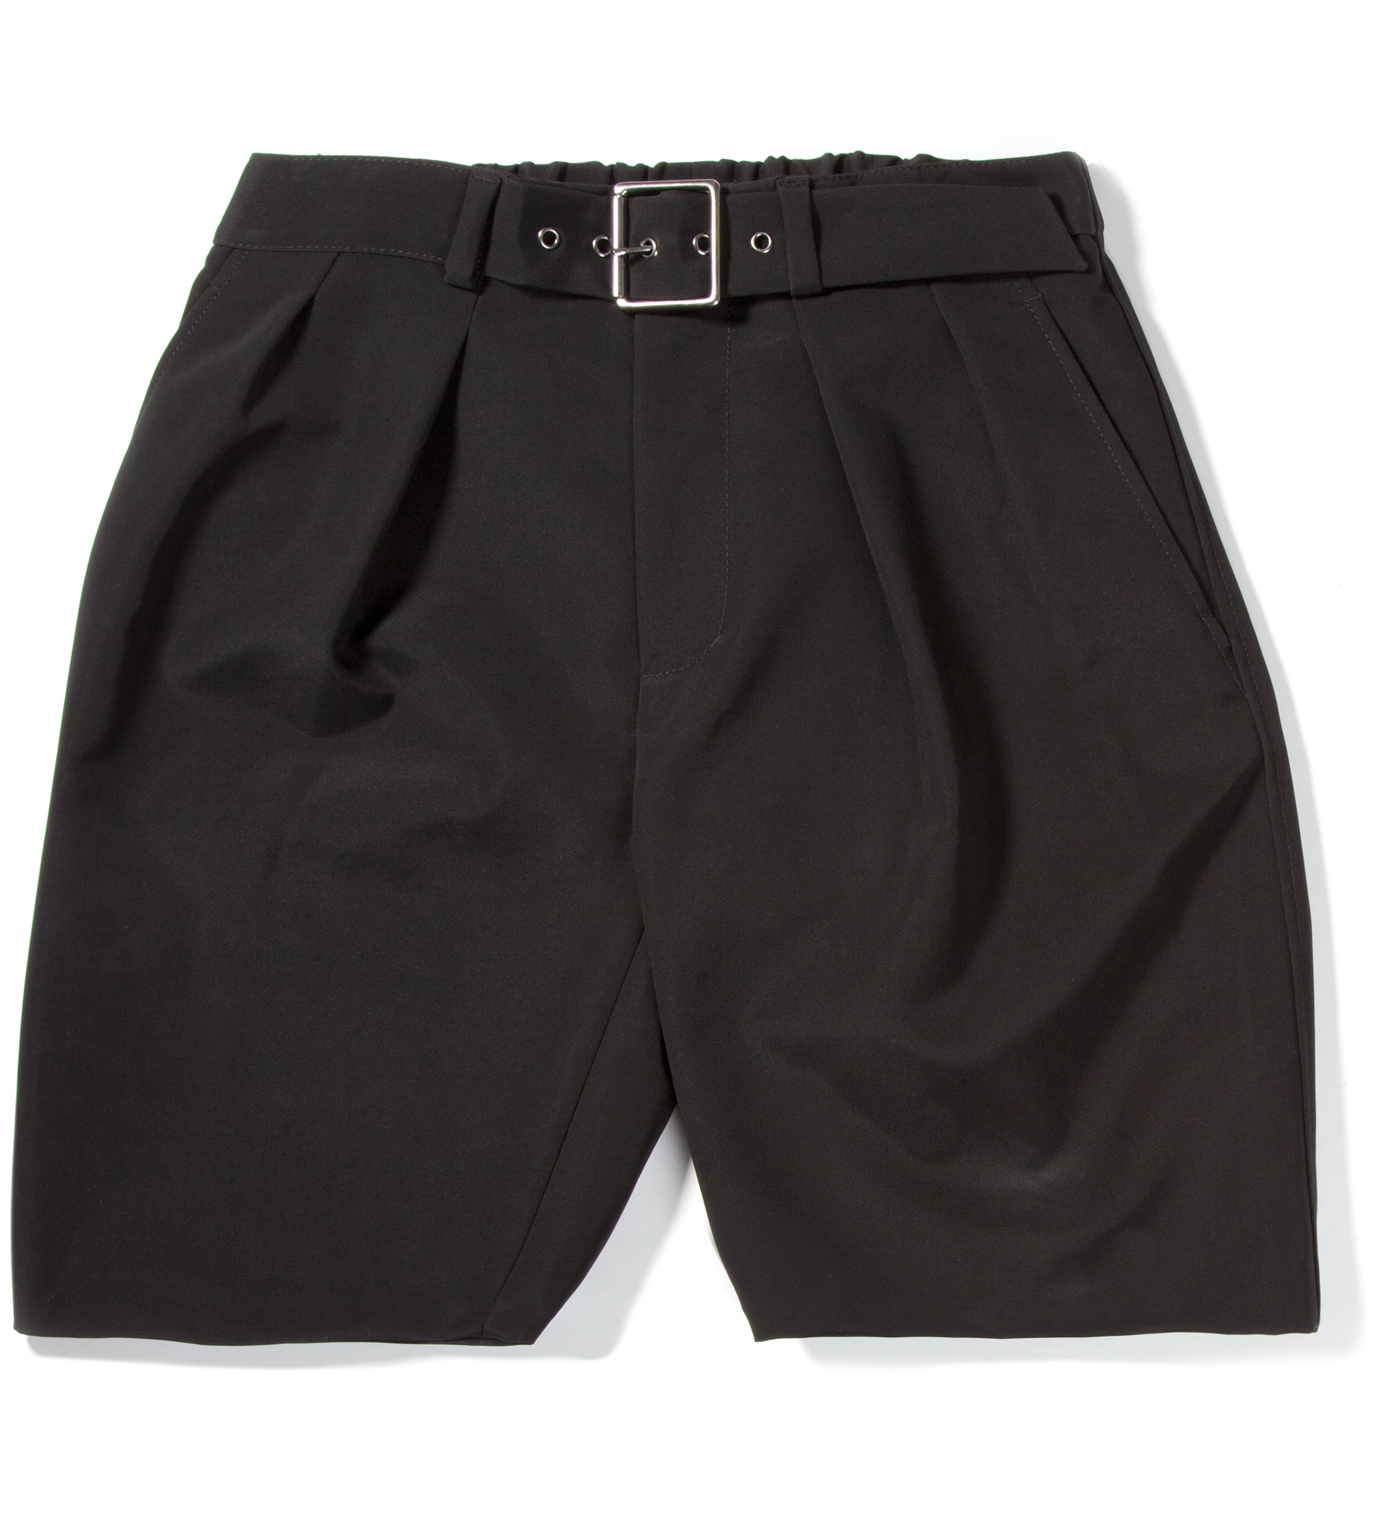 3.1 Phillip Lim Black Karate Short with Adjustable Belt